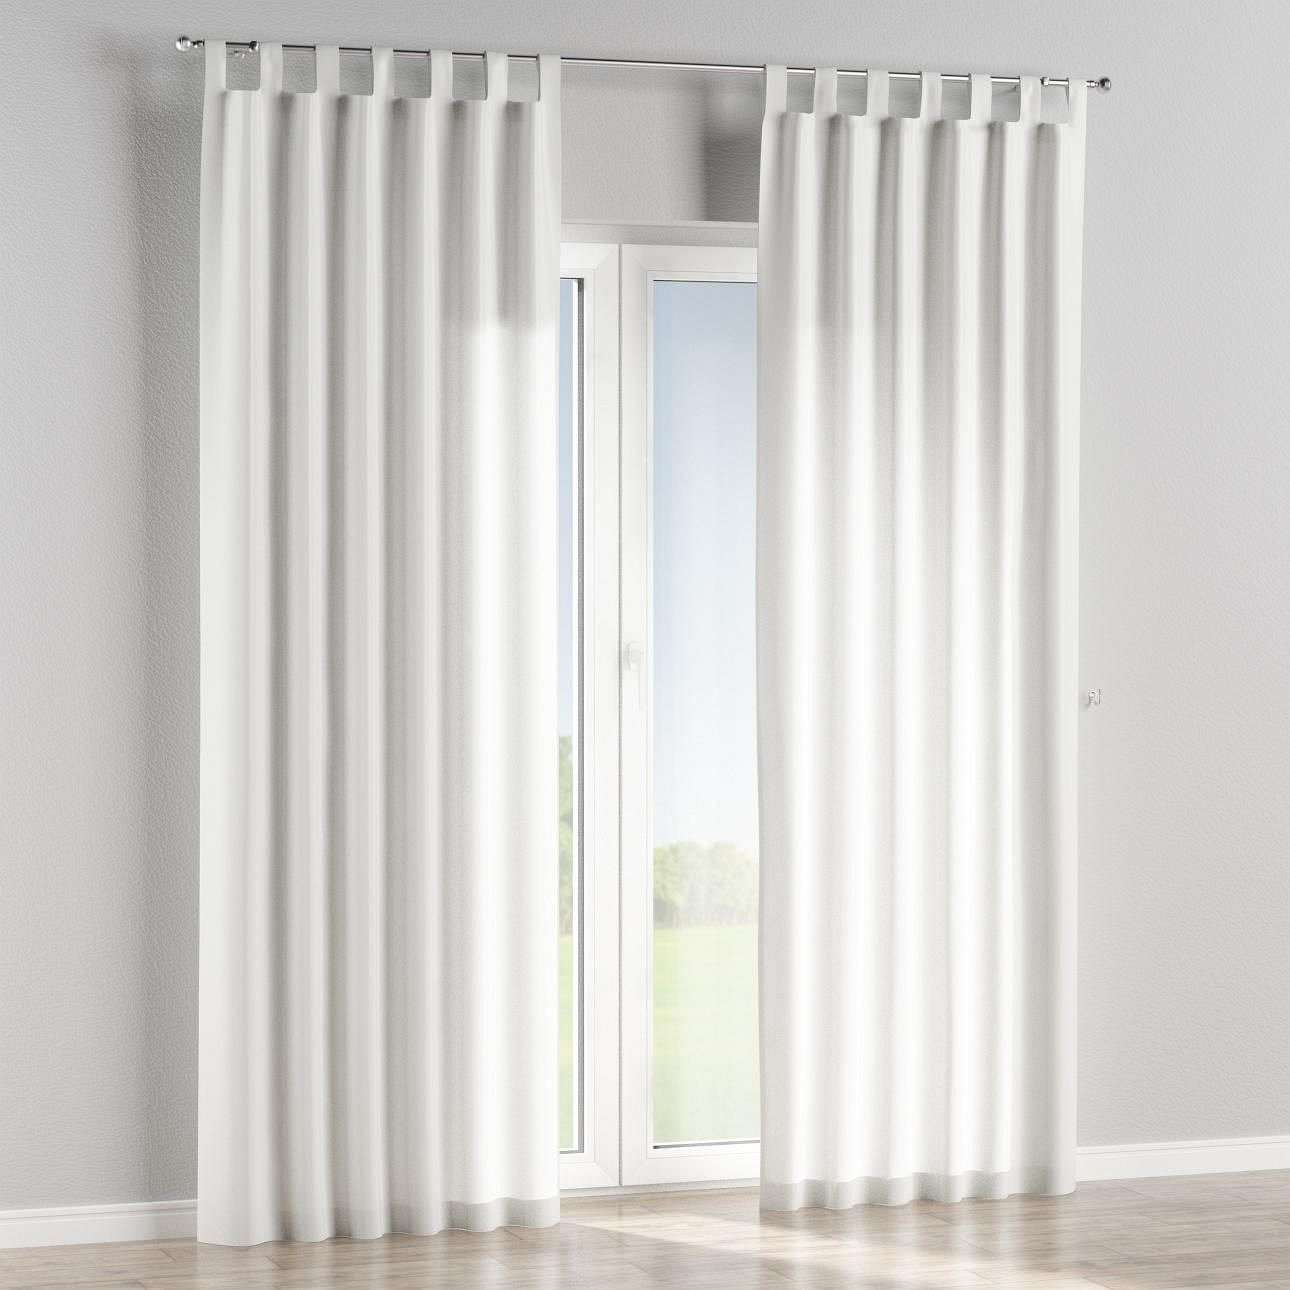 Tab top lined curtains in collection Mirella, fabric: 143-06